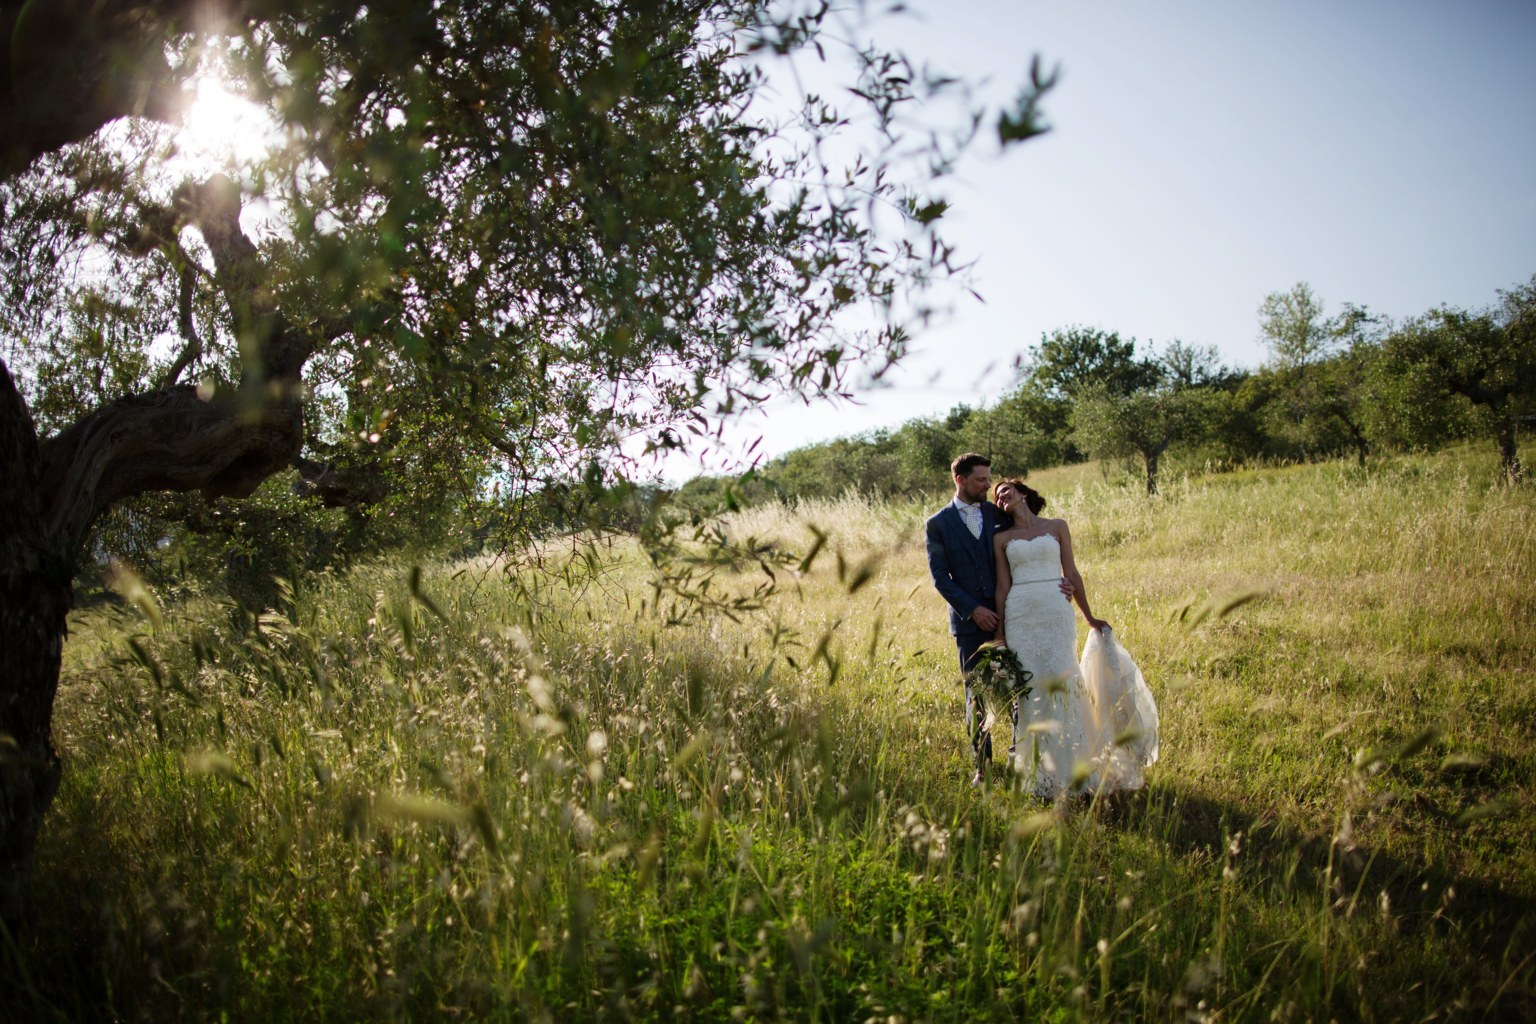 Matrimonio in Umbria - Wedding in Umbria 13